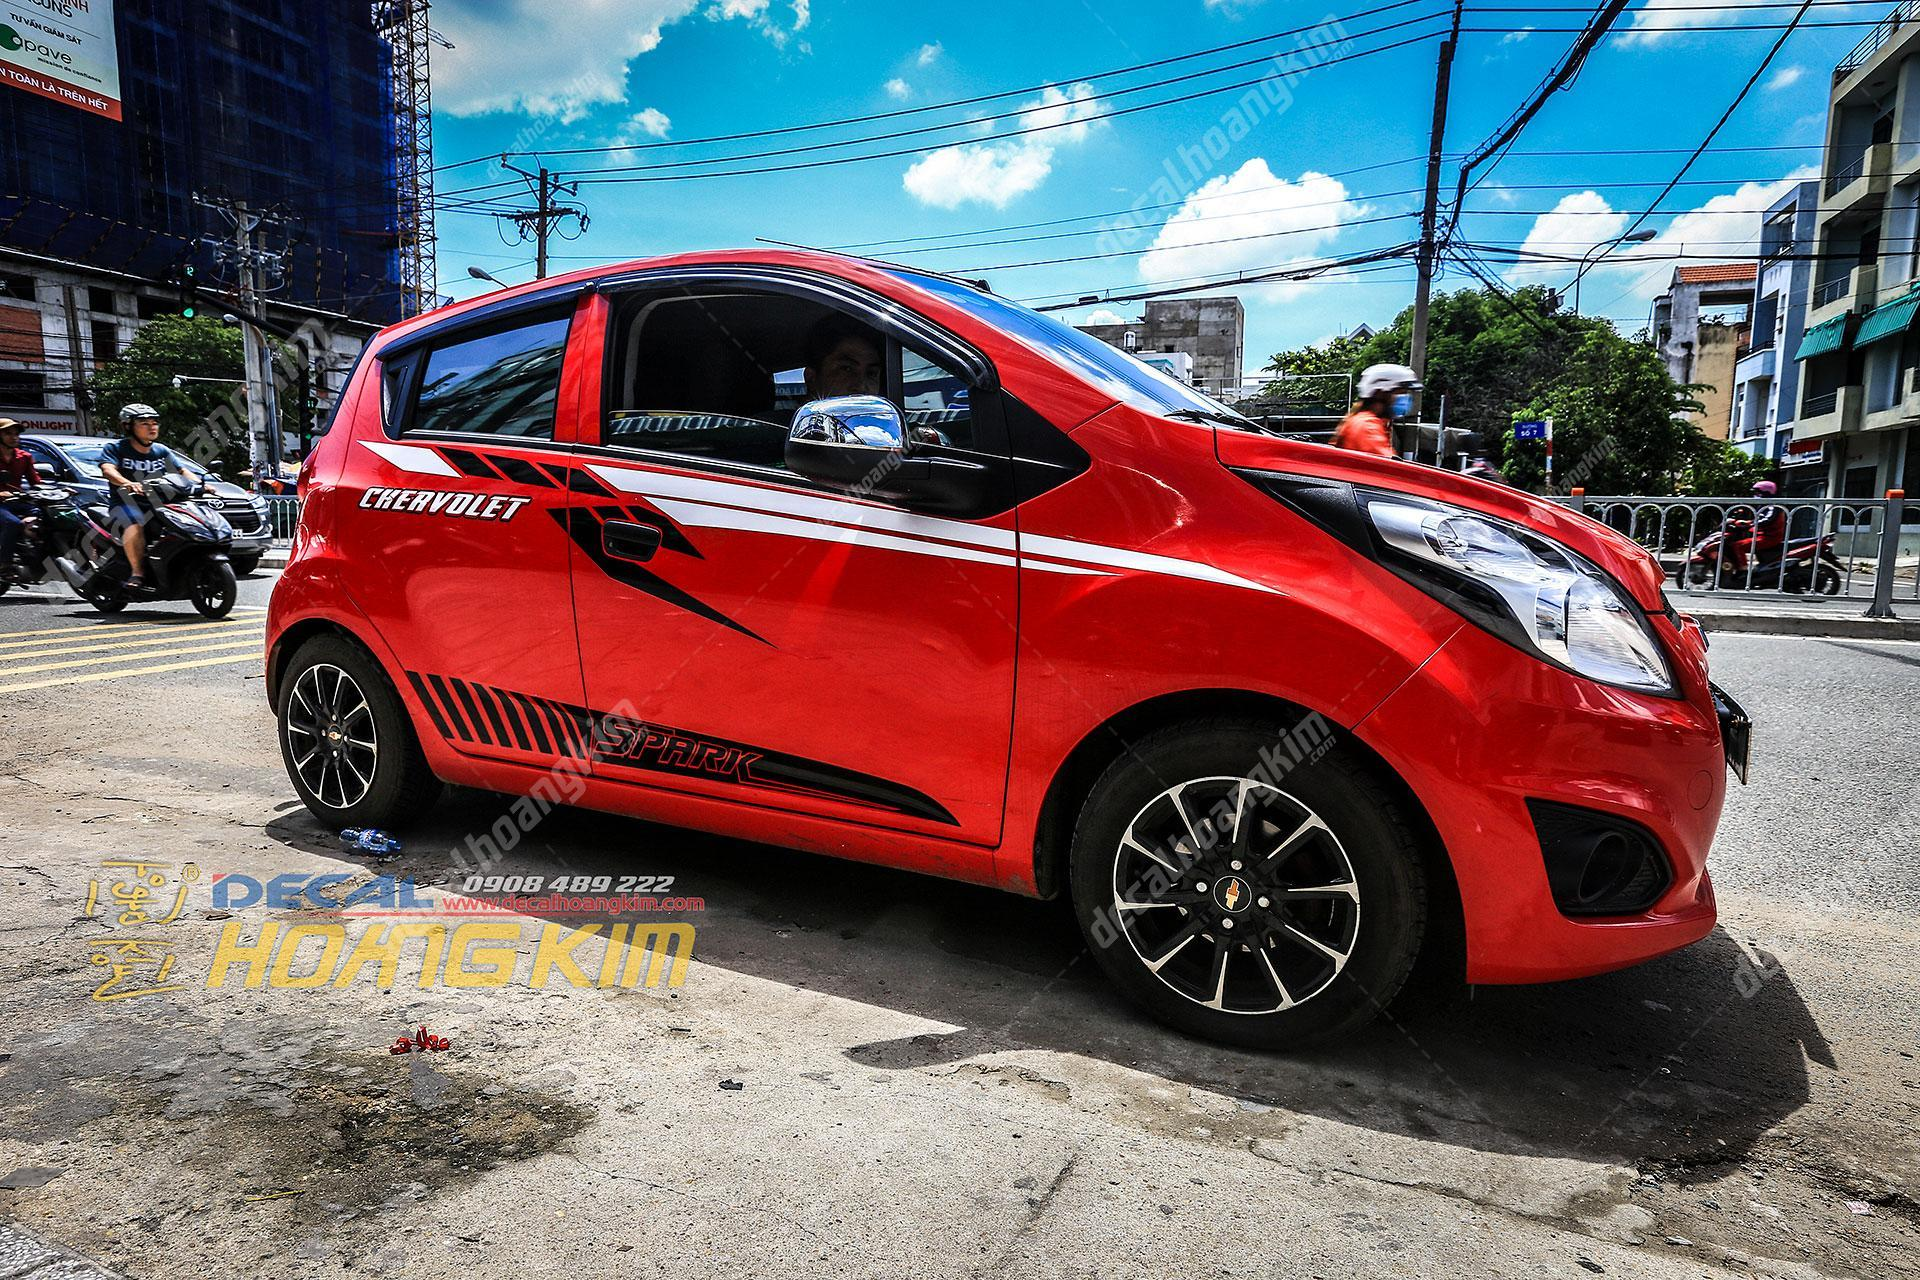 https://hoangkims5.blob.core.windows.net/otohoangkimzag152hg18/Tem-xe-Chevrolet-Spark-CSP001.jpg